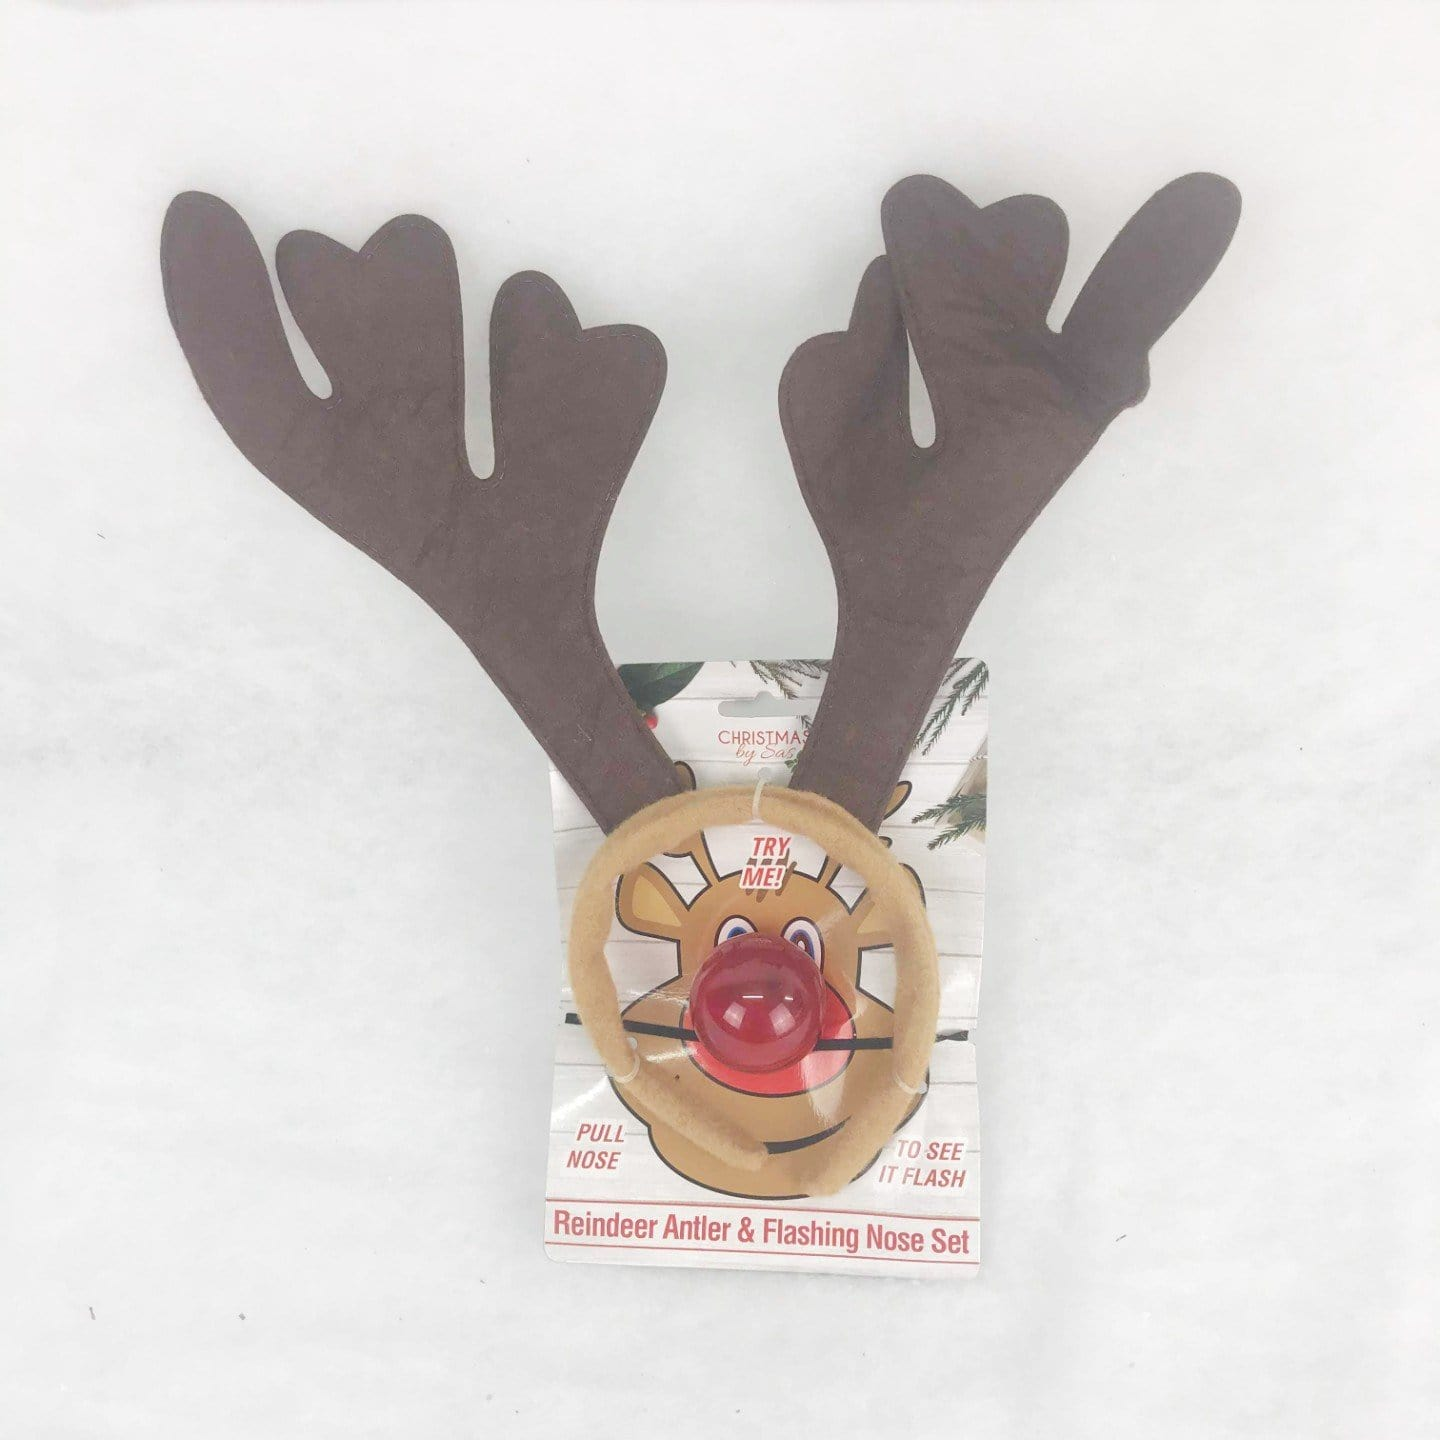 Reindeer Antler with Flashing Nose Set